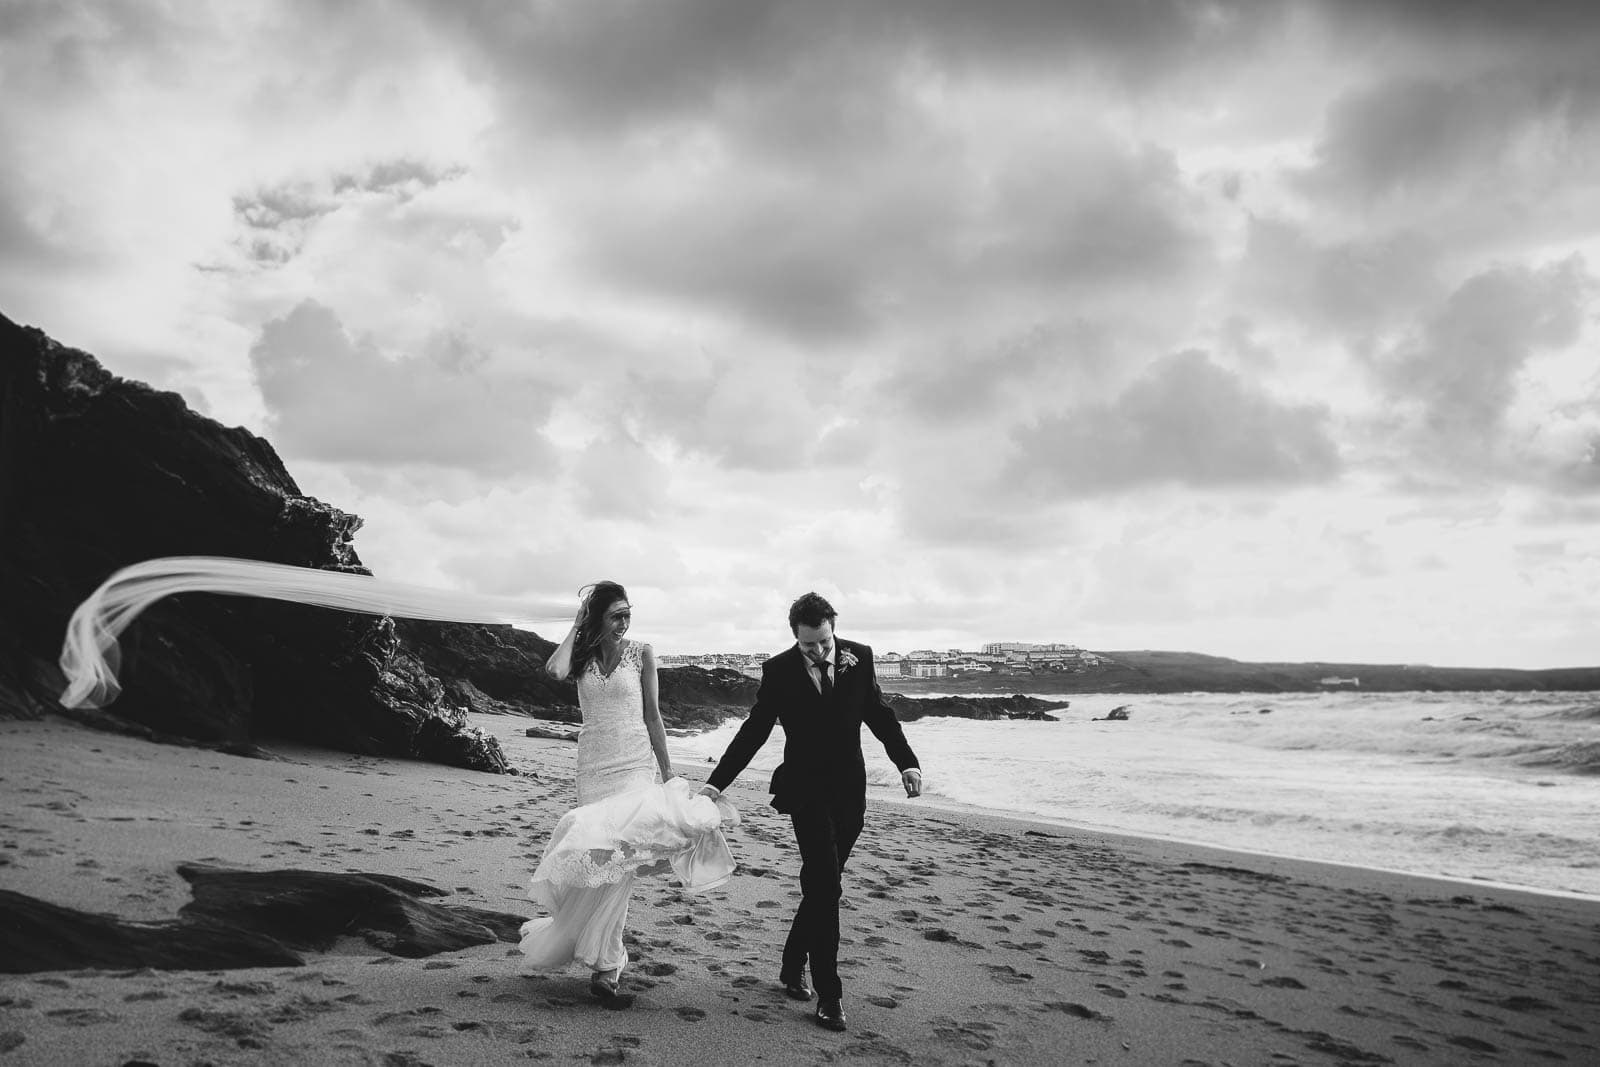 Wedding photography at the Carnmarth hotel in Newquay